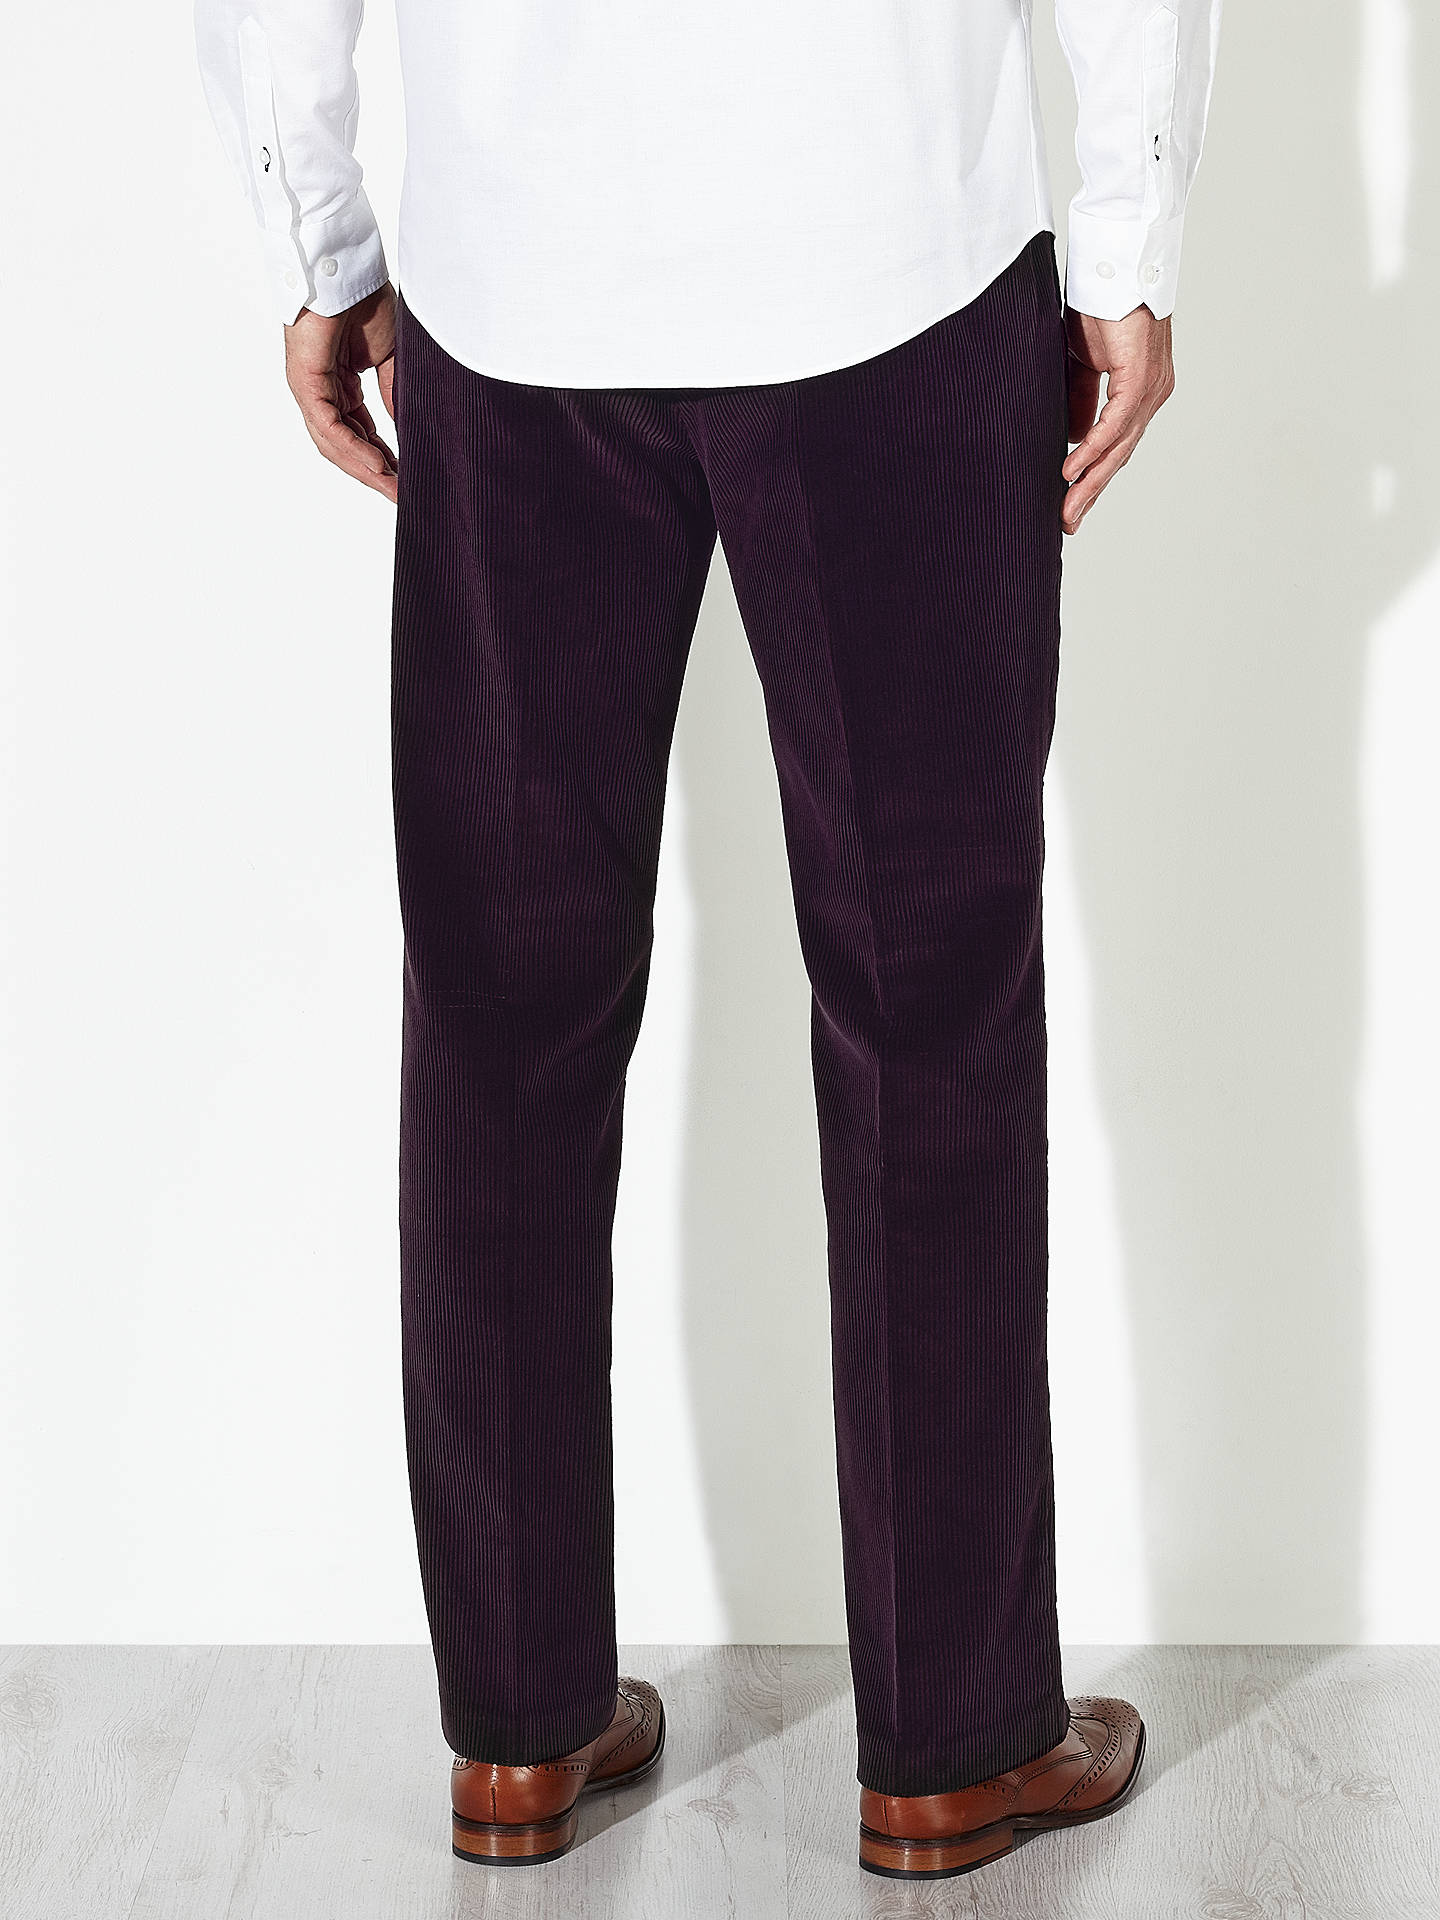 Buy John Lewis Laundered Cotton Corduroy Trousers, Wine, 40R Online at johnlewis.com